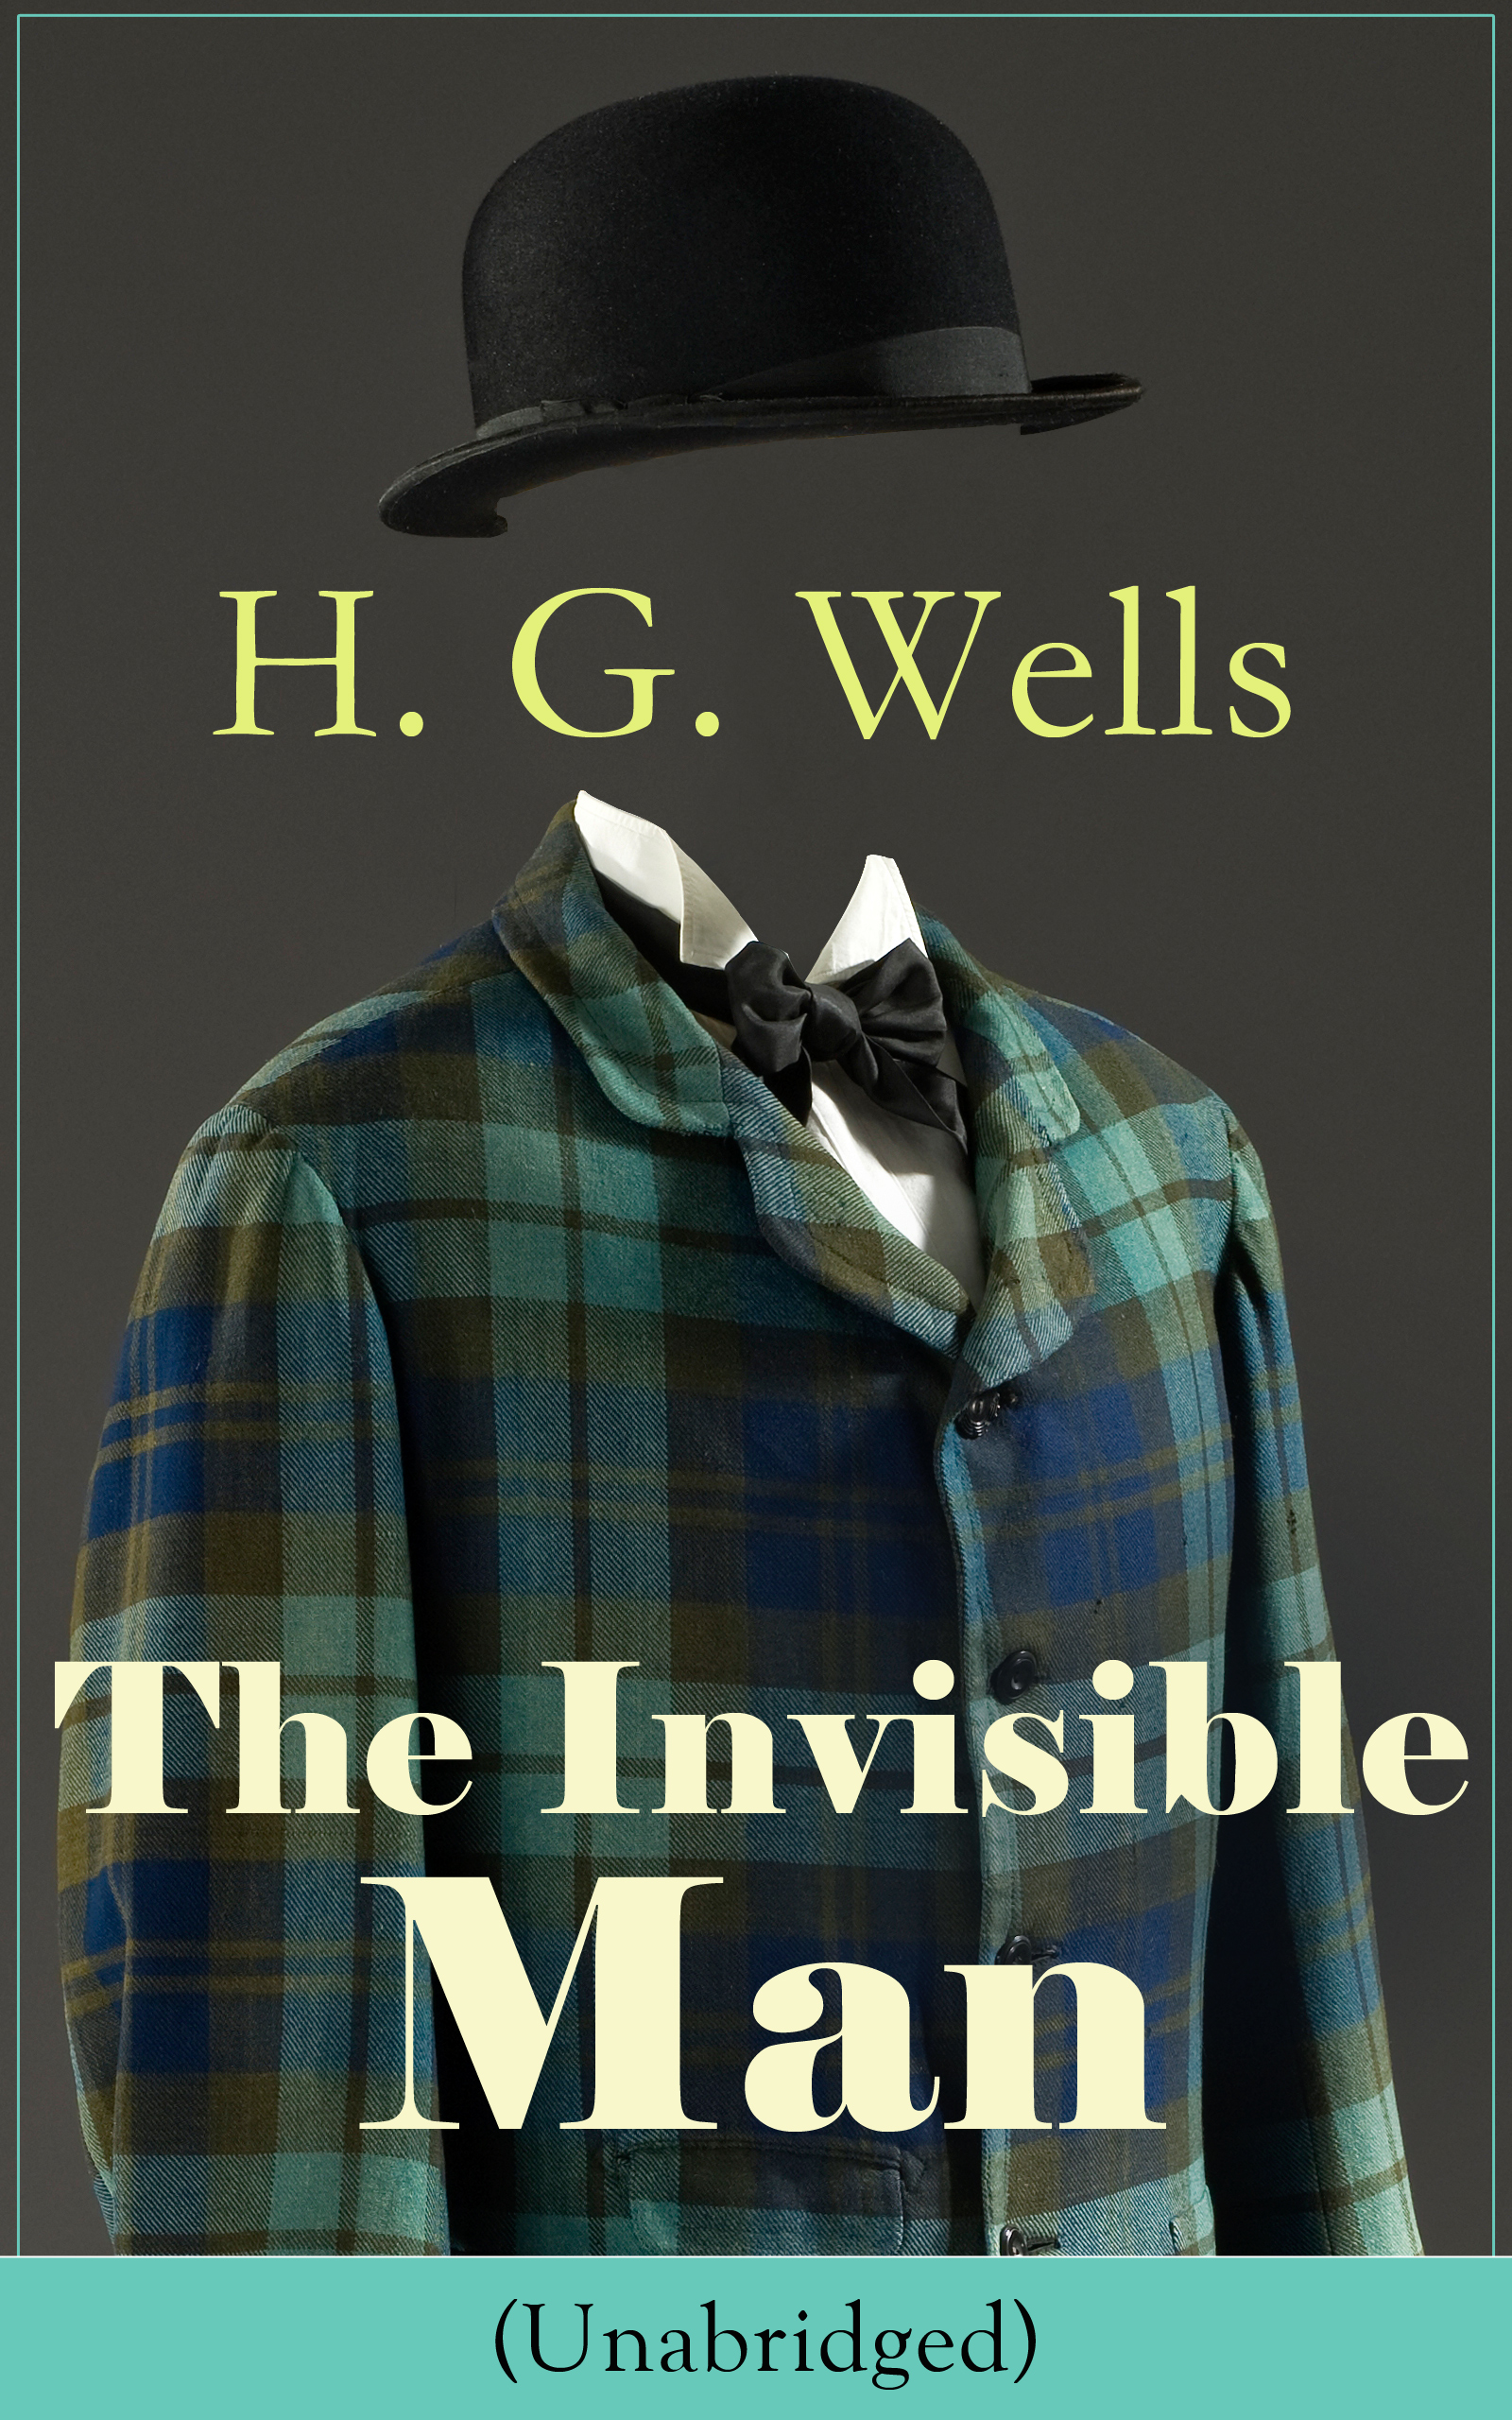 цена на H. G. Wells The Invisible Man (Unabridged)